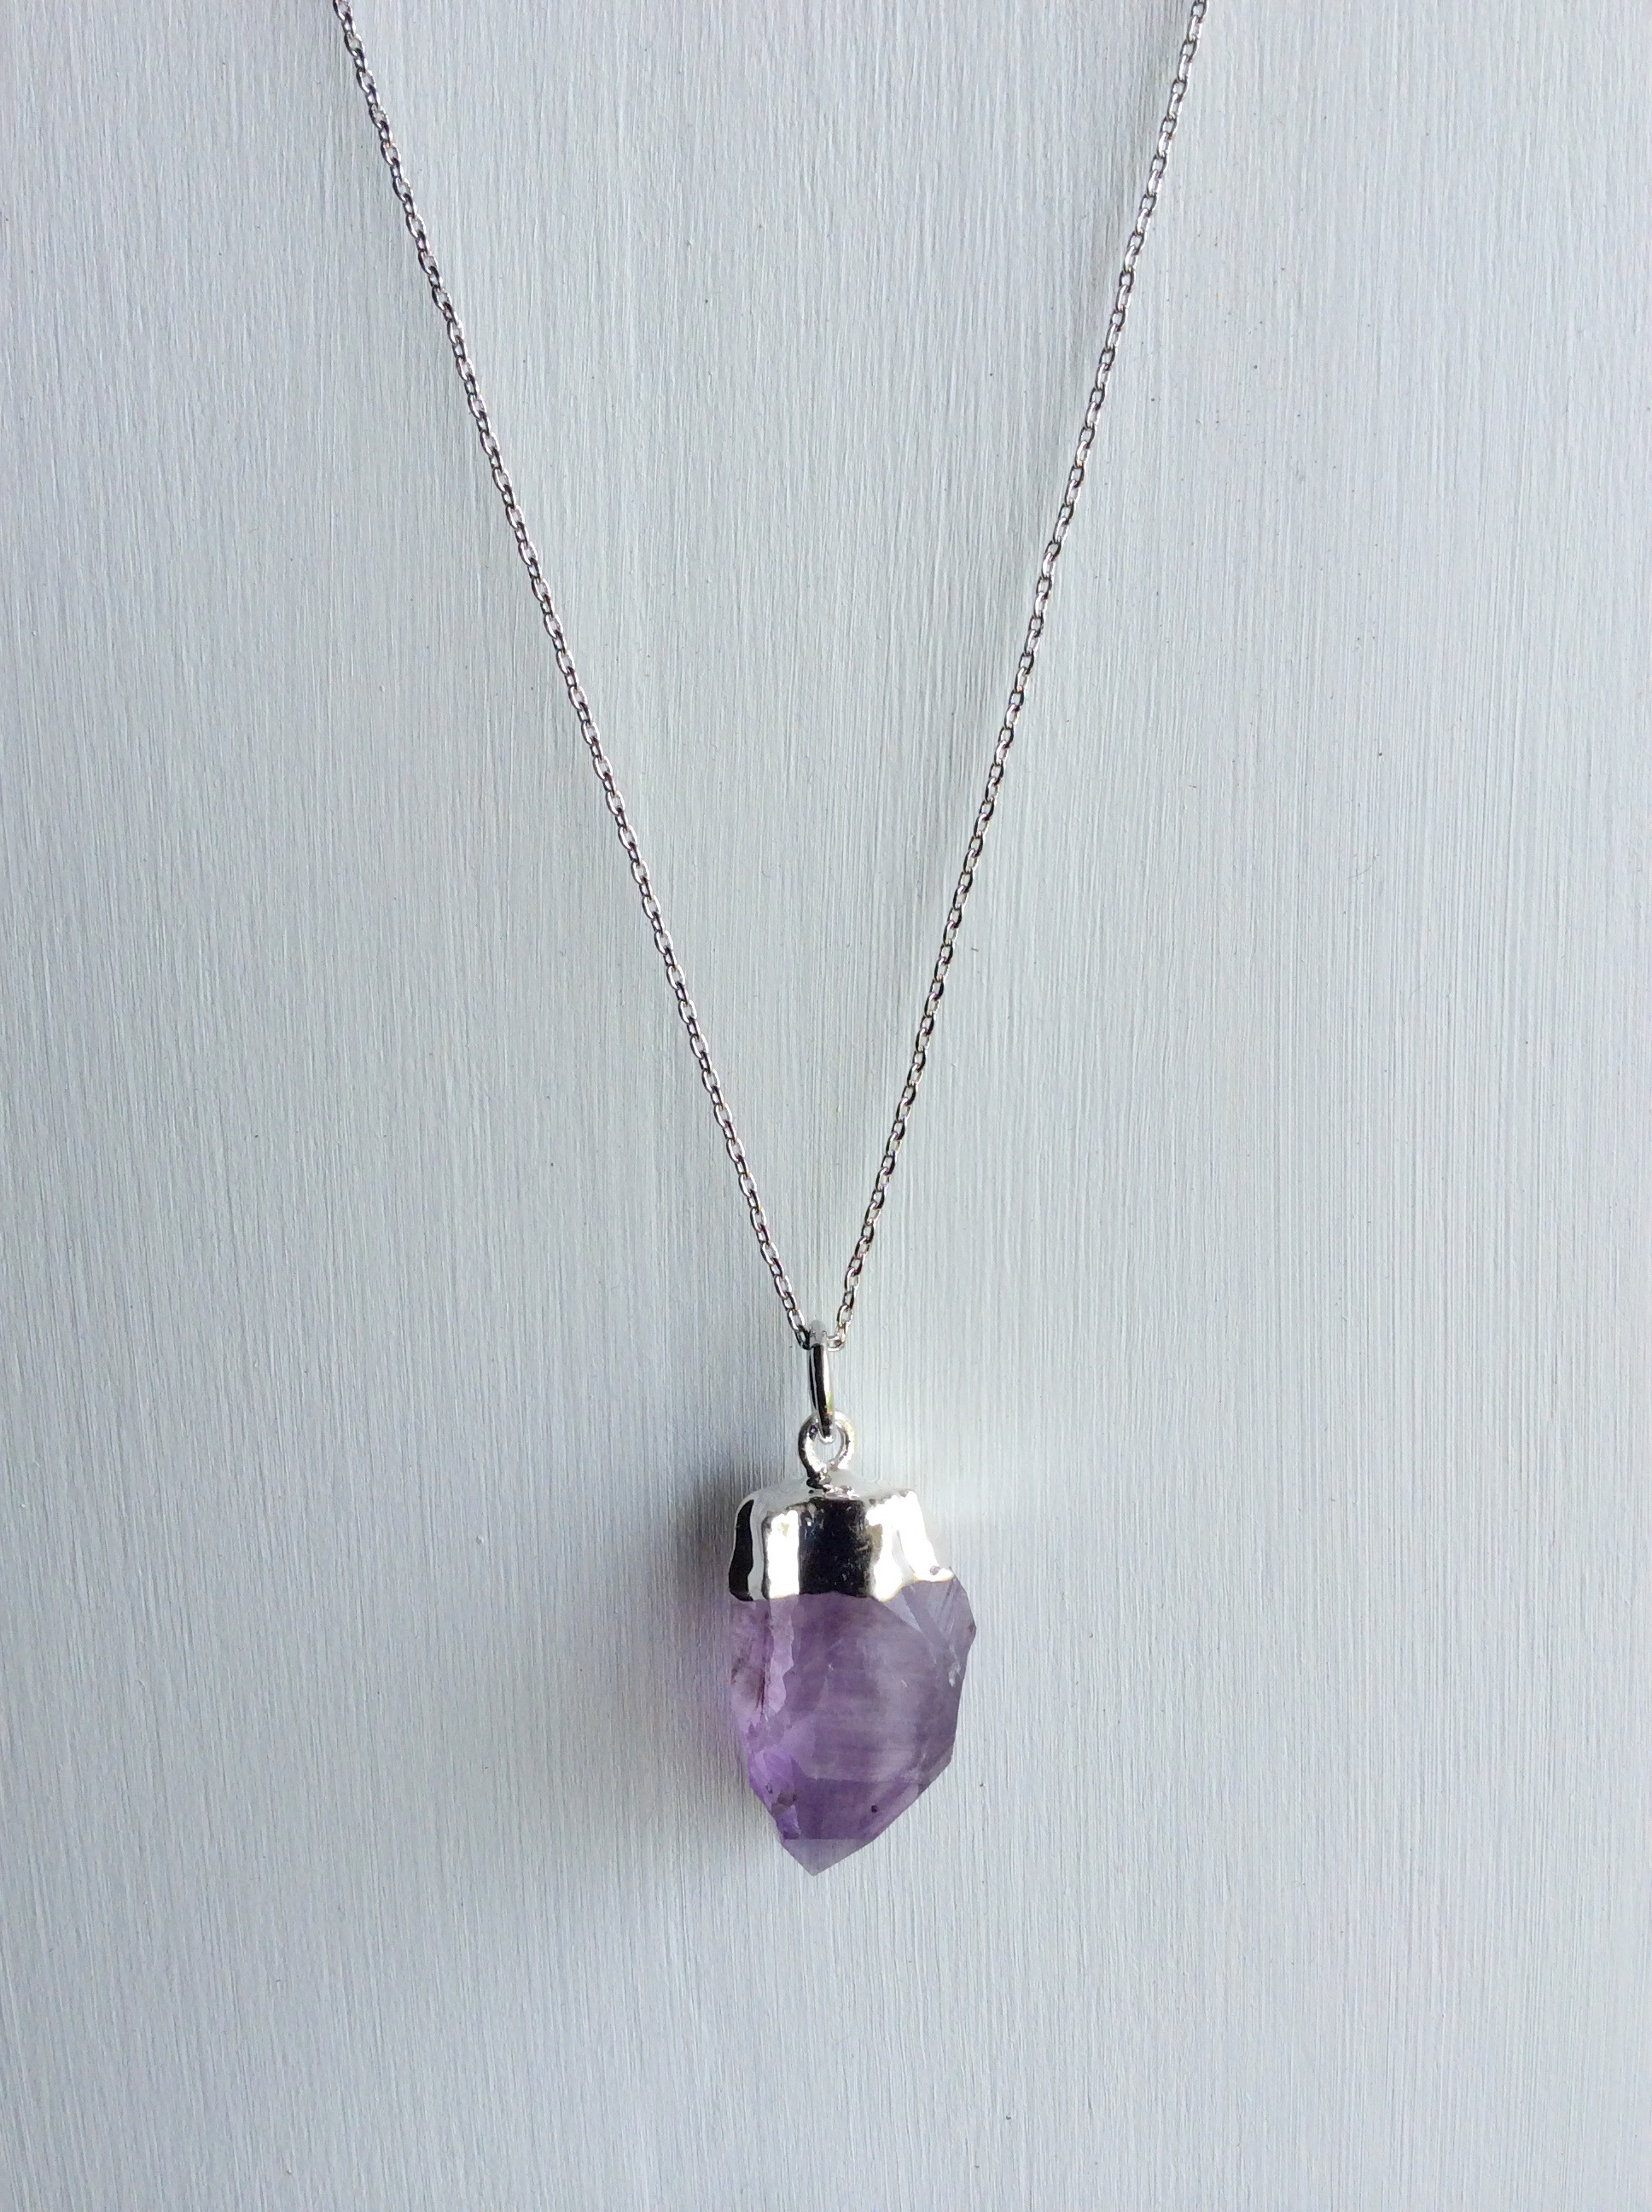 crystal druzy necklace pendant cluster rough amethyst raw